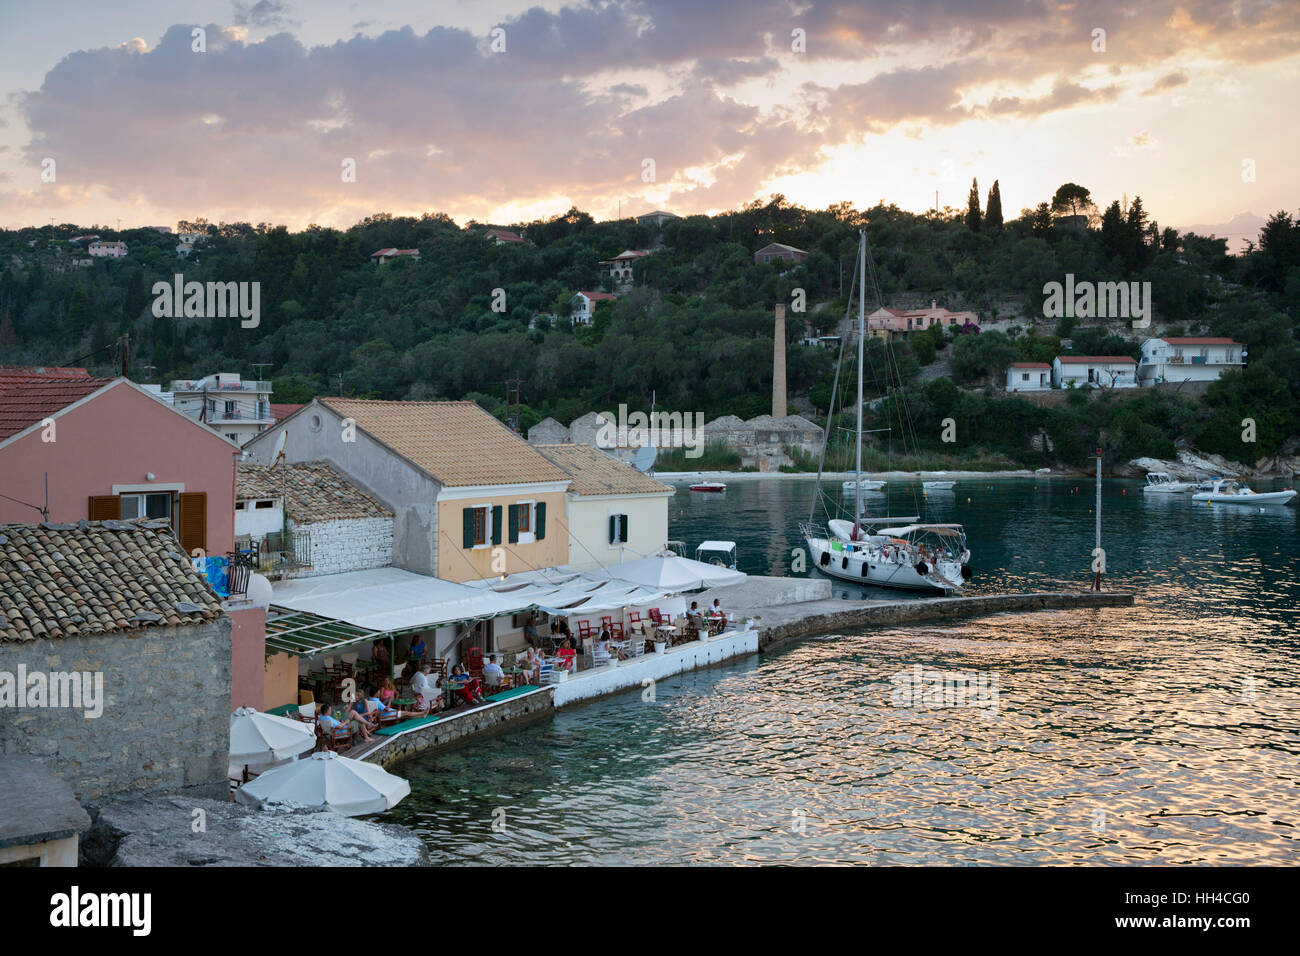 View over harbour and waterfront bars at sunset, Loggos, Paxos, Ionian Islands, Greek Islands, Greece, Europe - Stock Image